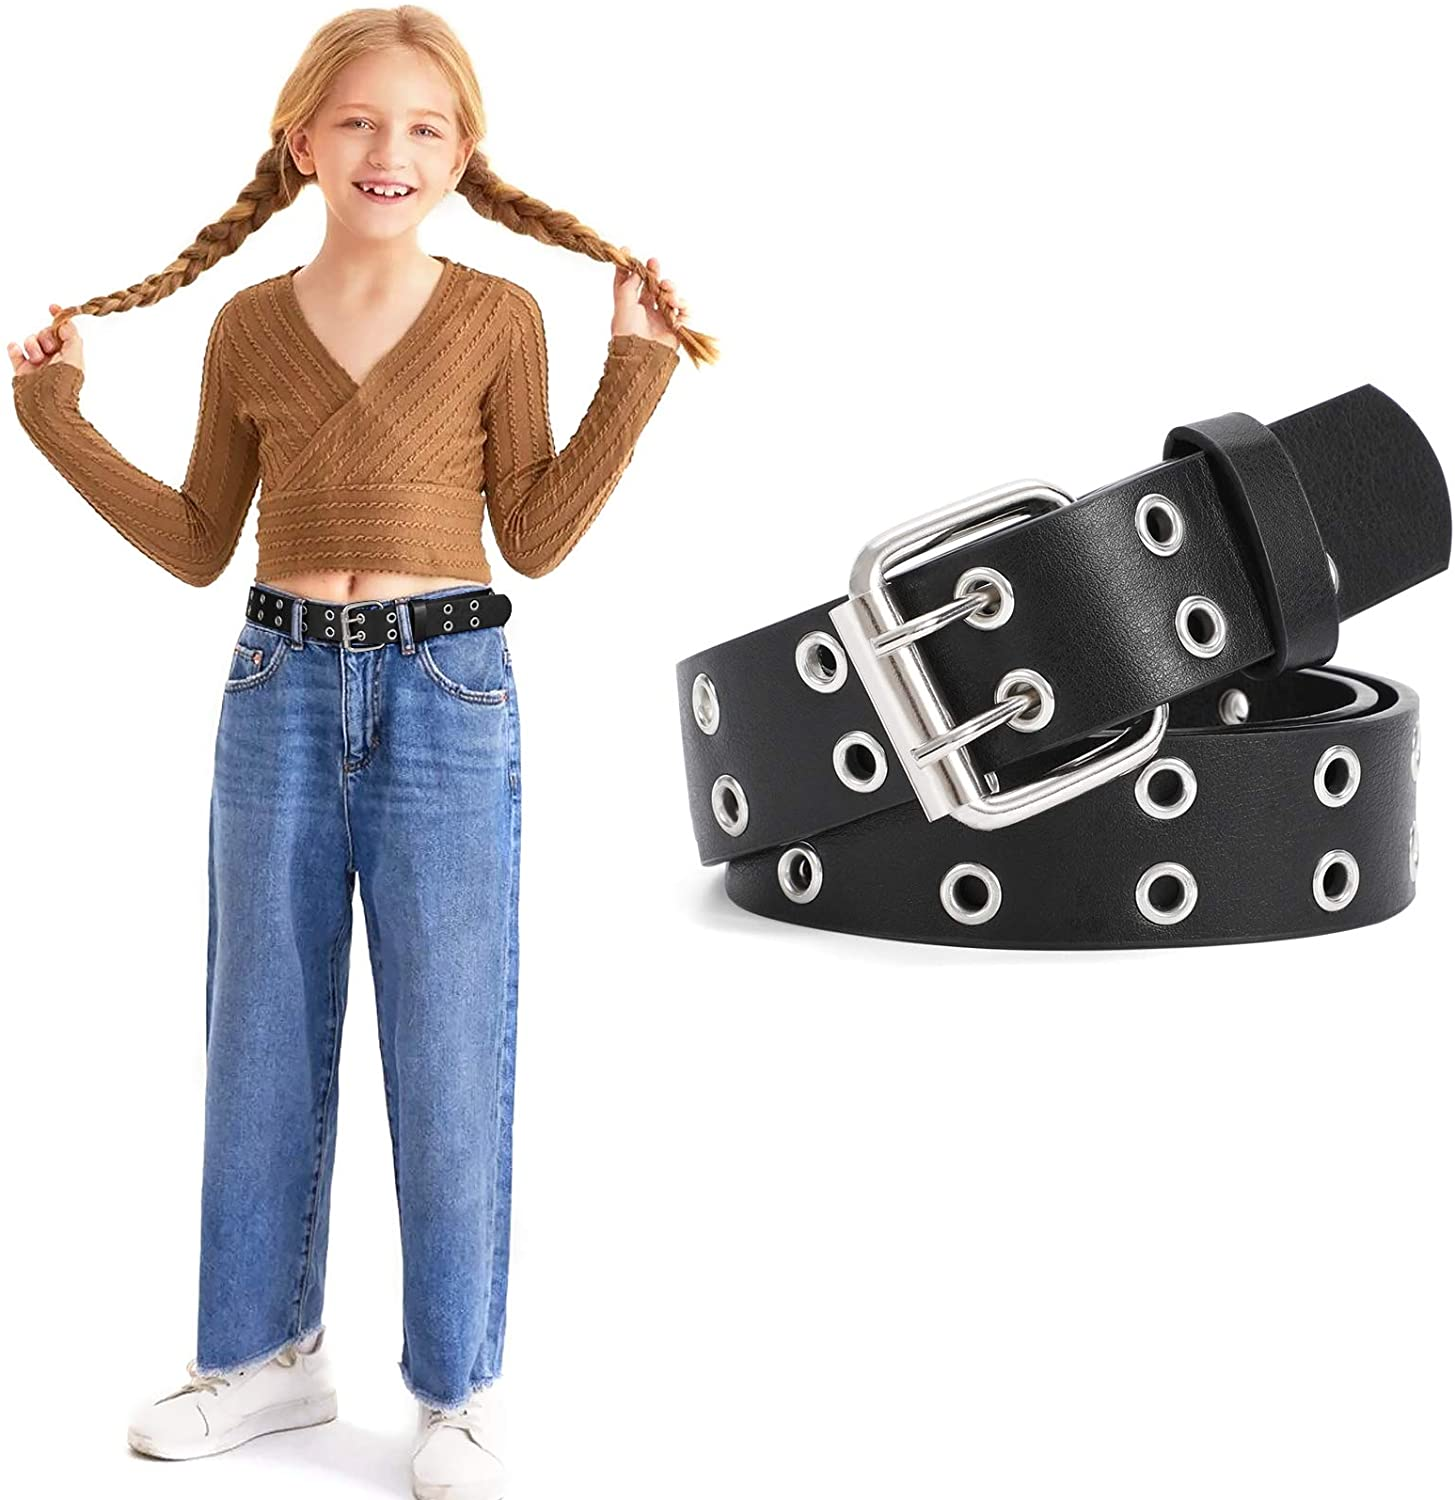 Kids Double Grommet Belts With Holes for Girls Boys PU...